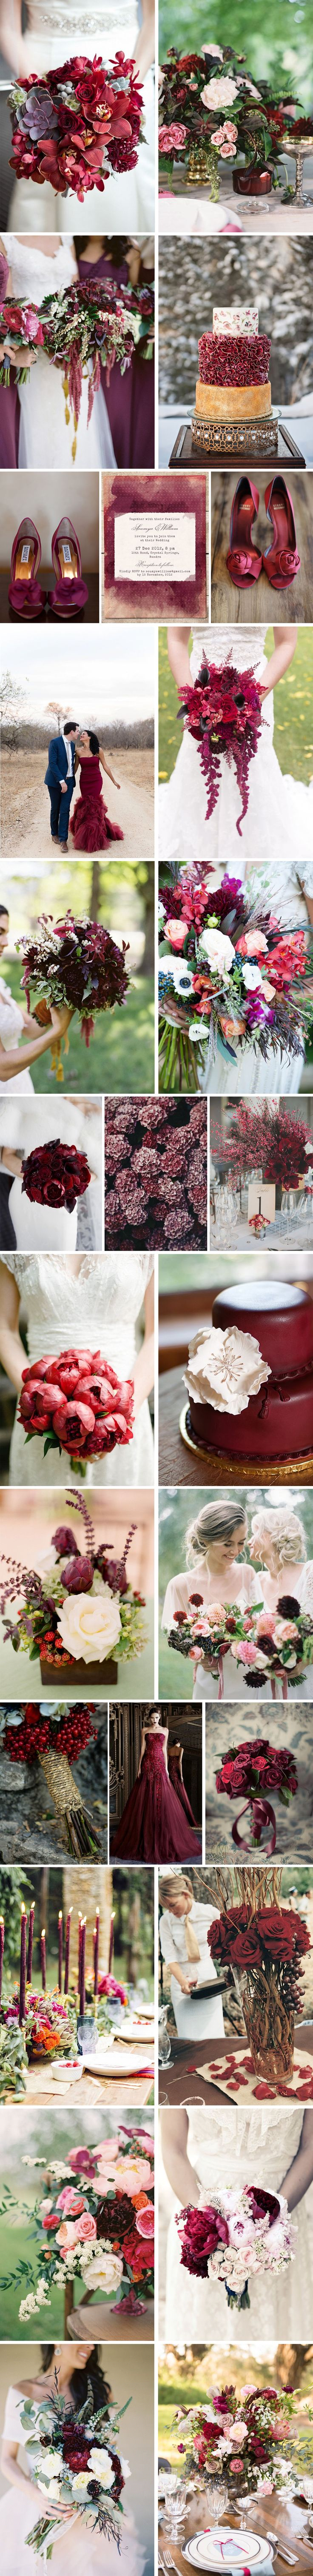 pantone color of 2015 marsala wedding inspiration